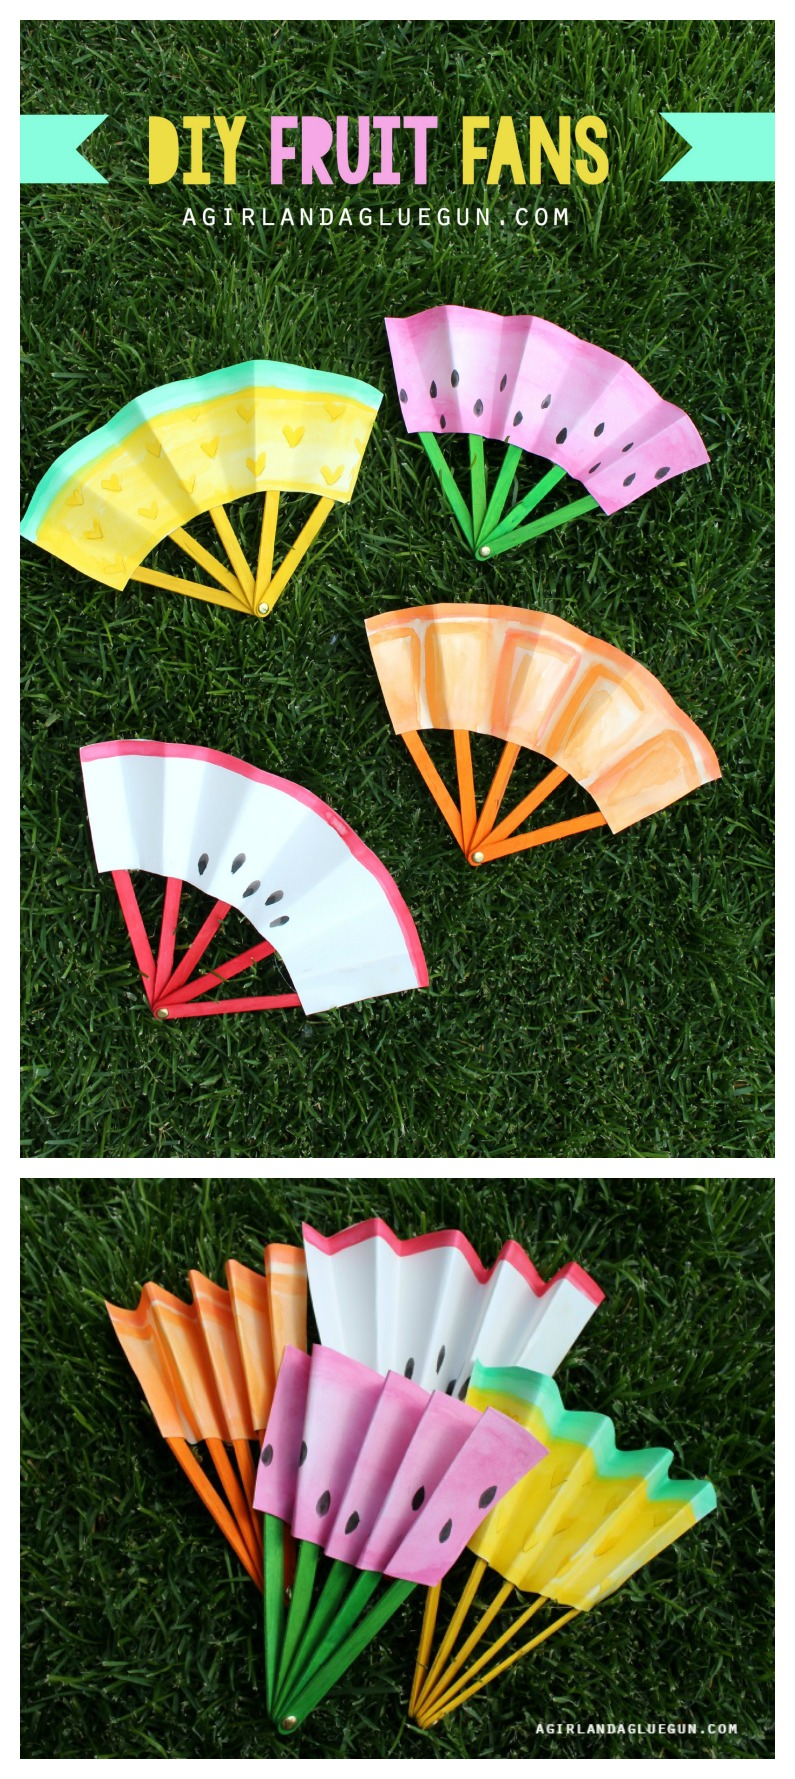 DIY Fruit Fans: Kids Craft - The Idea Room